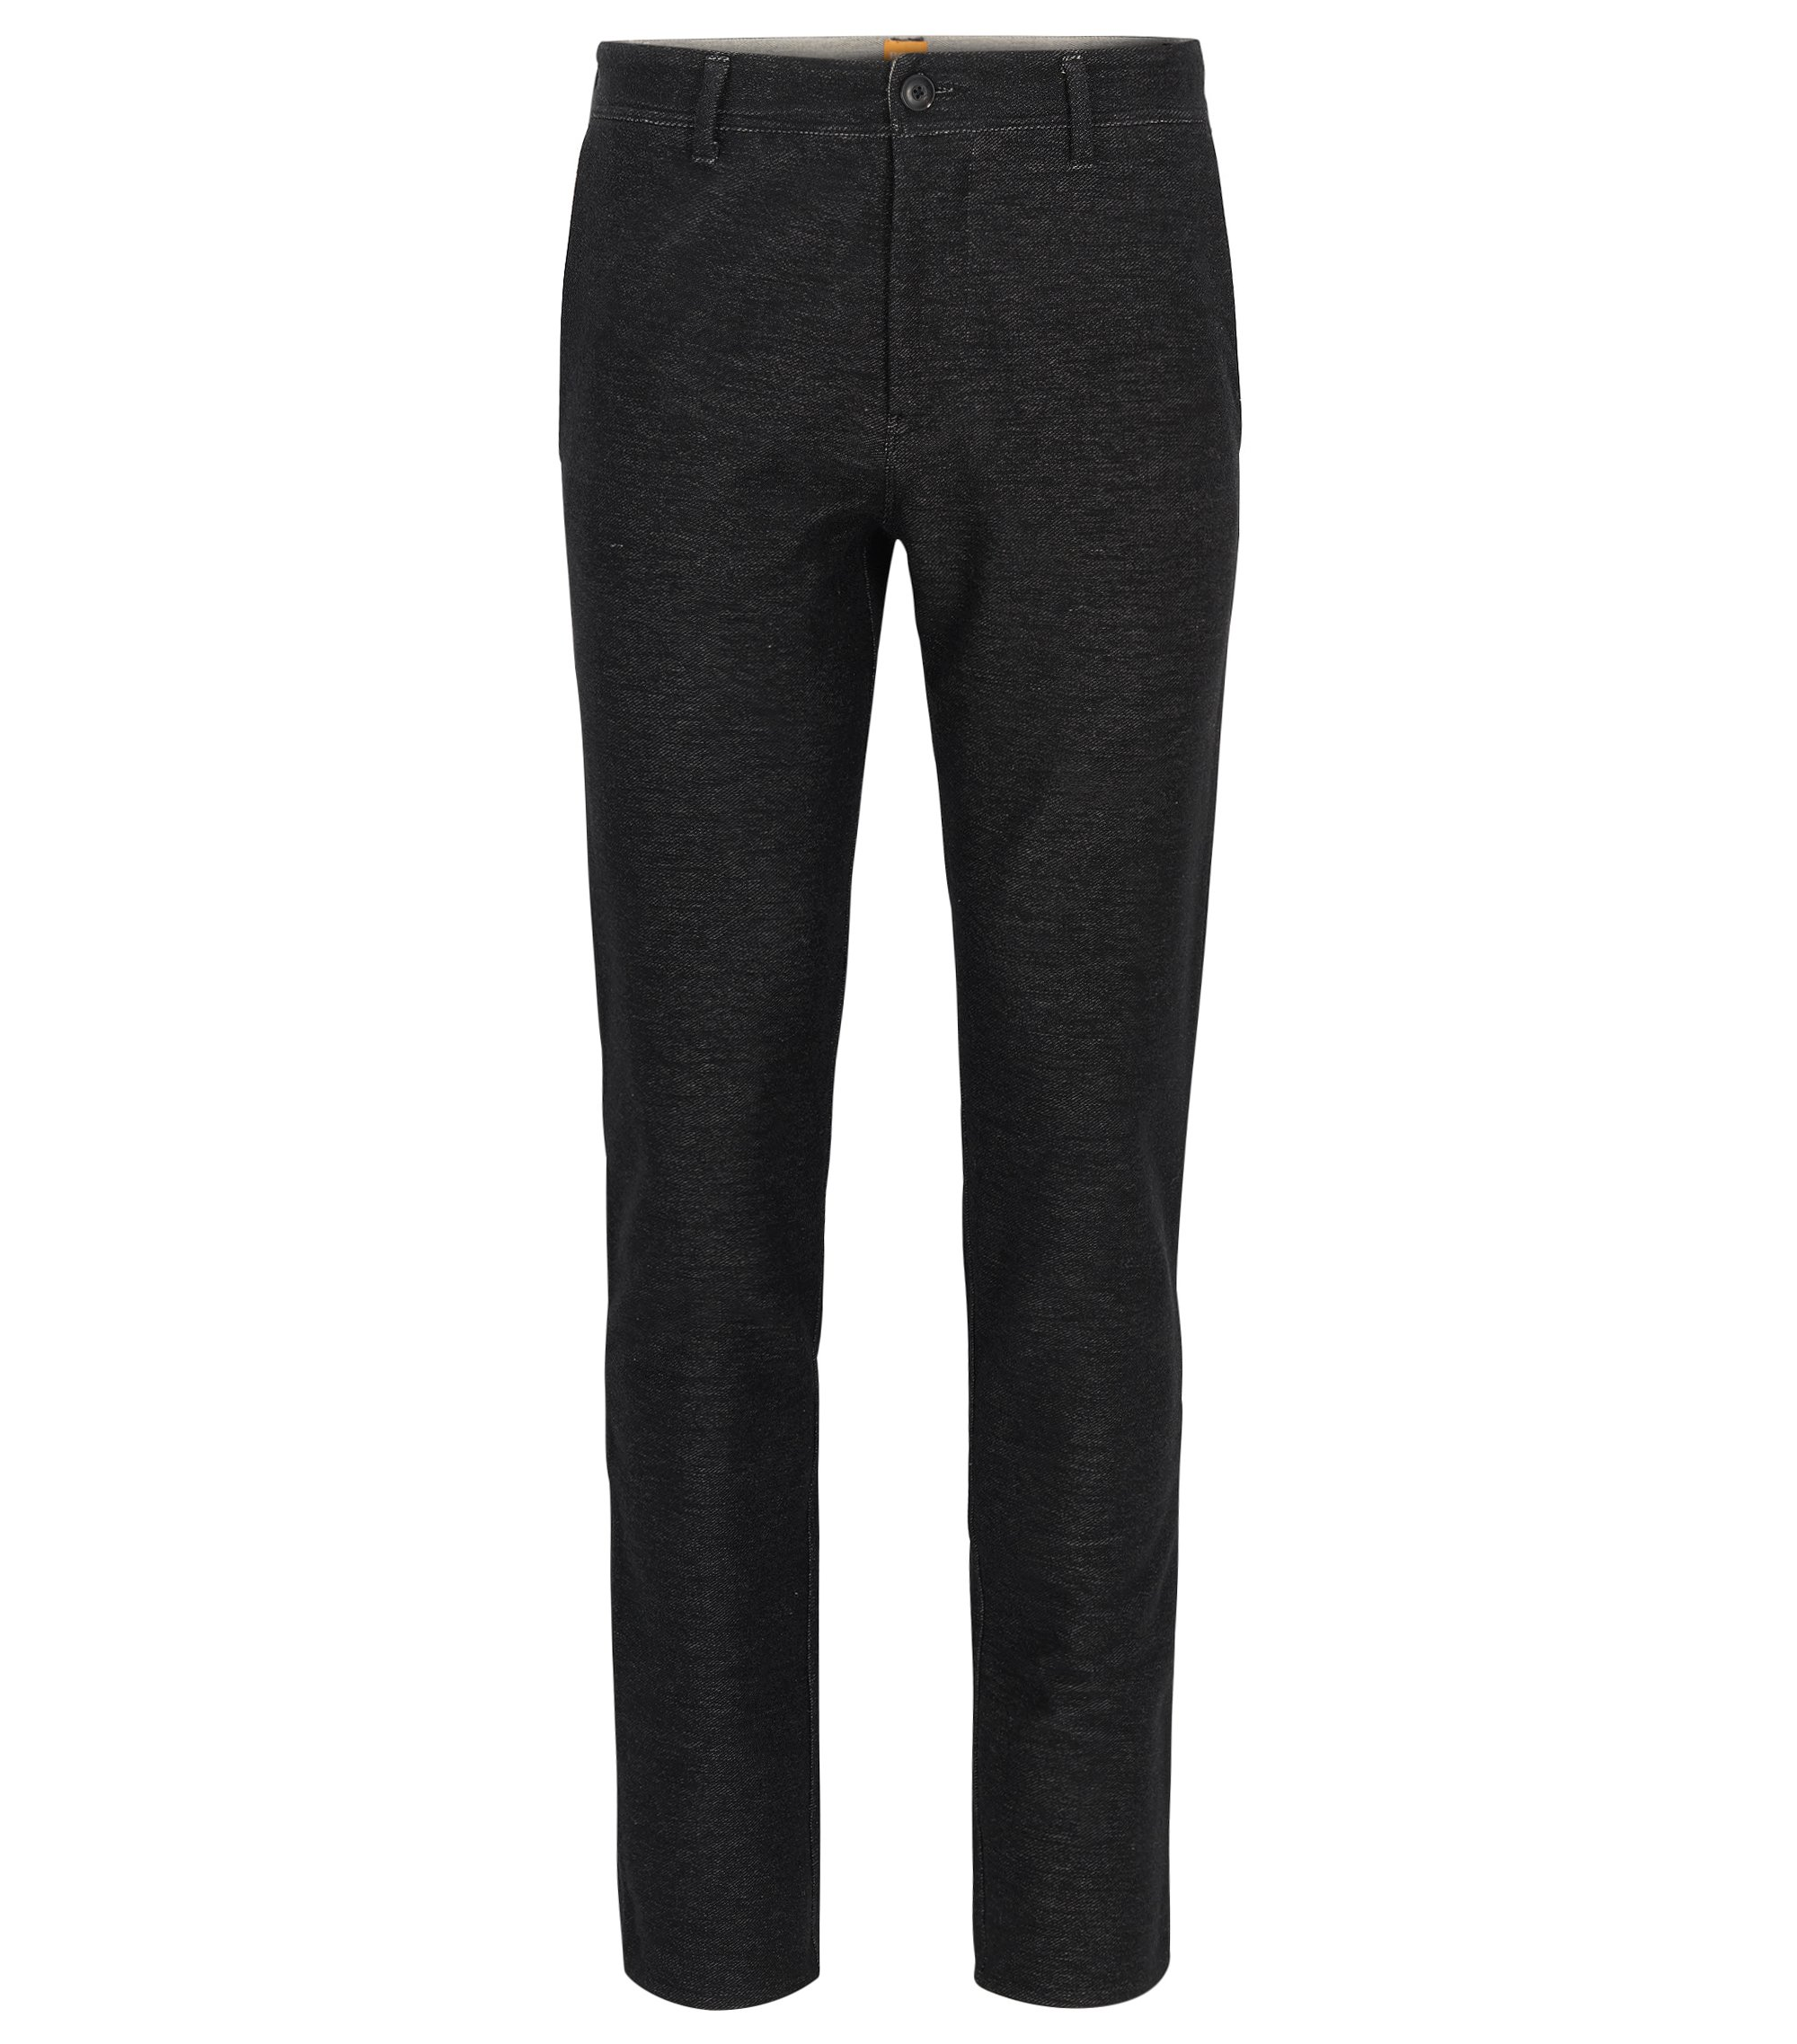 Stretch Jersey Pant, Tapered Fit | Symba, Black